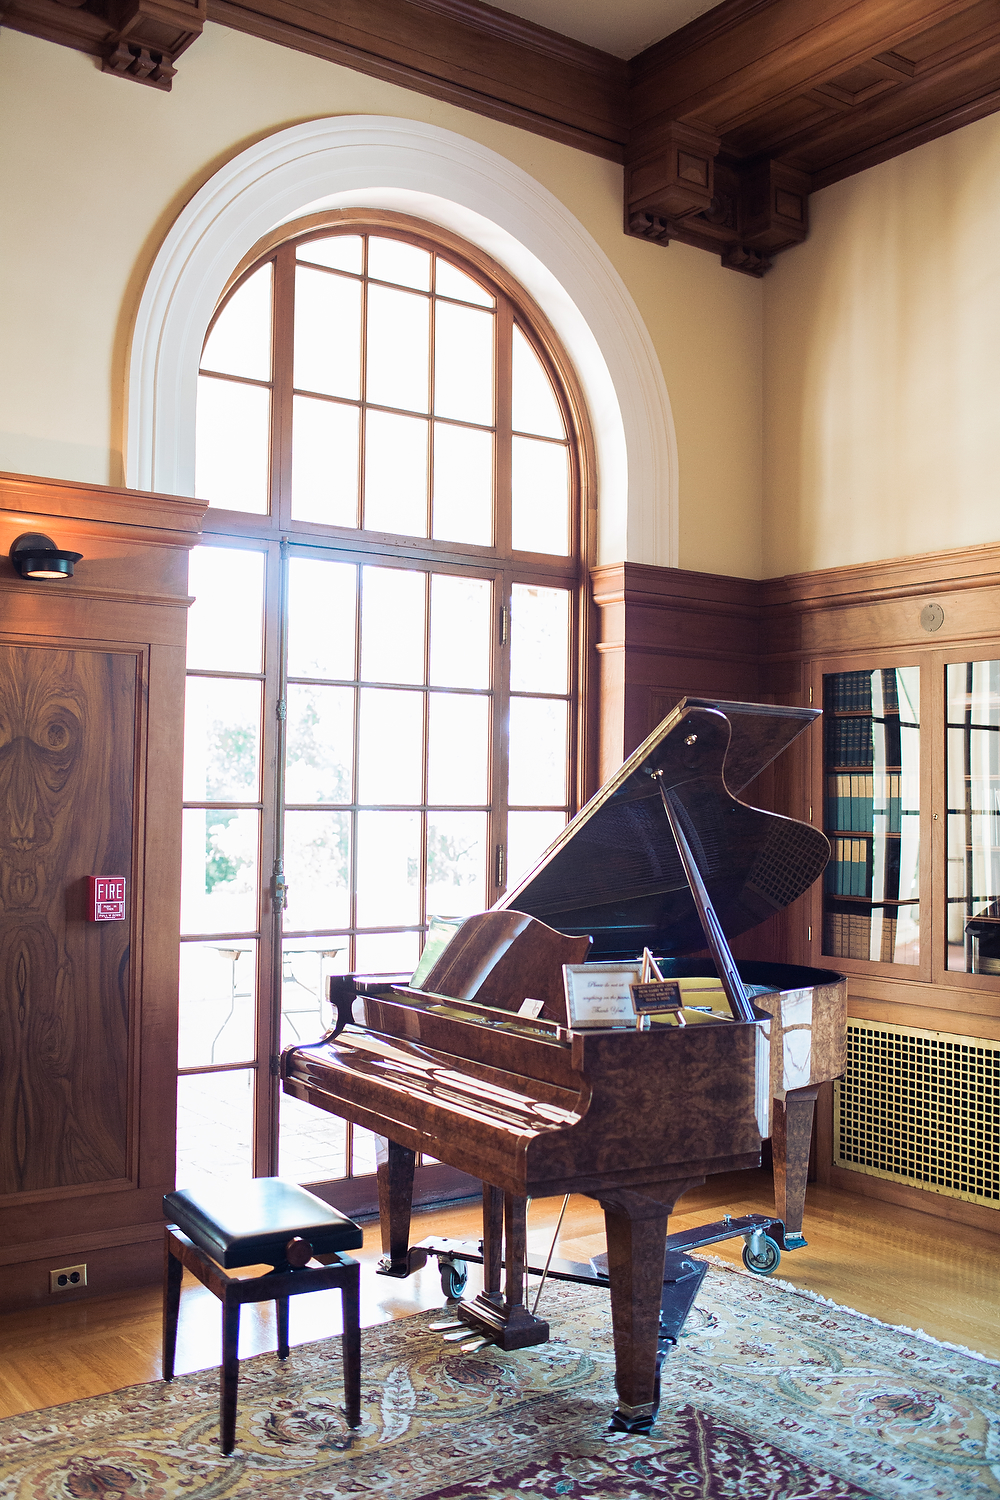 Musicians and guests are invited to play on this antique grand piano